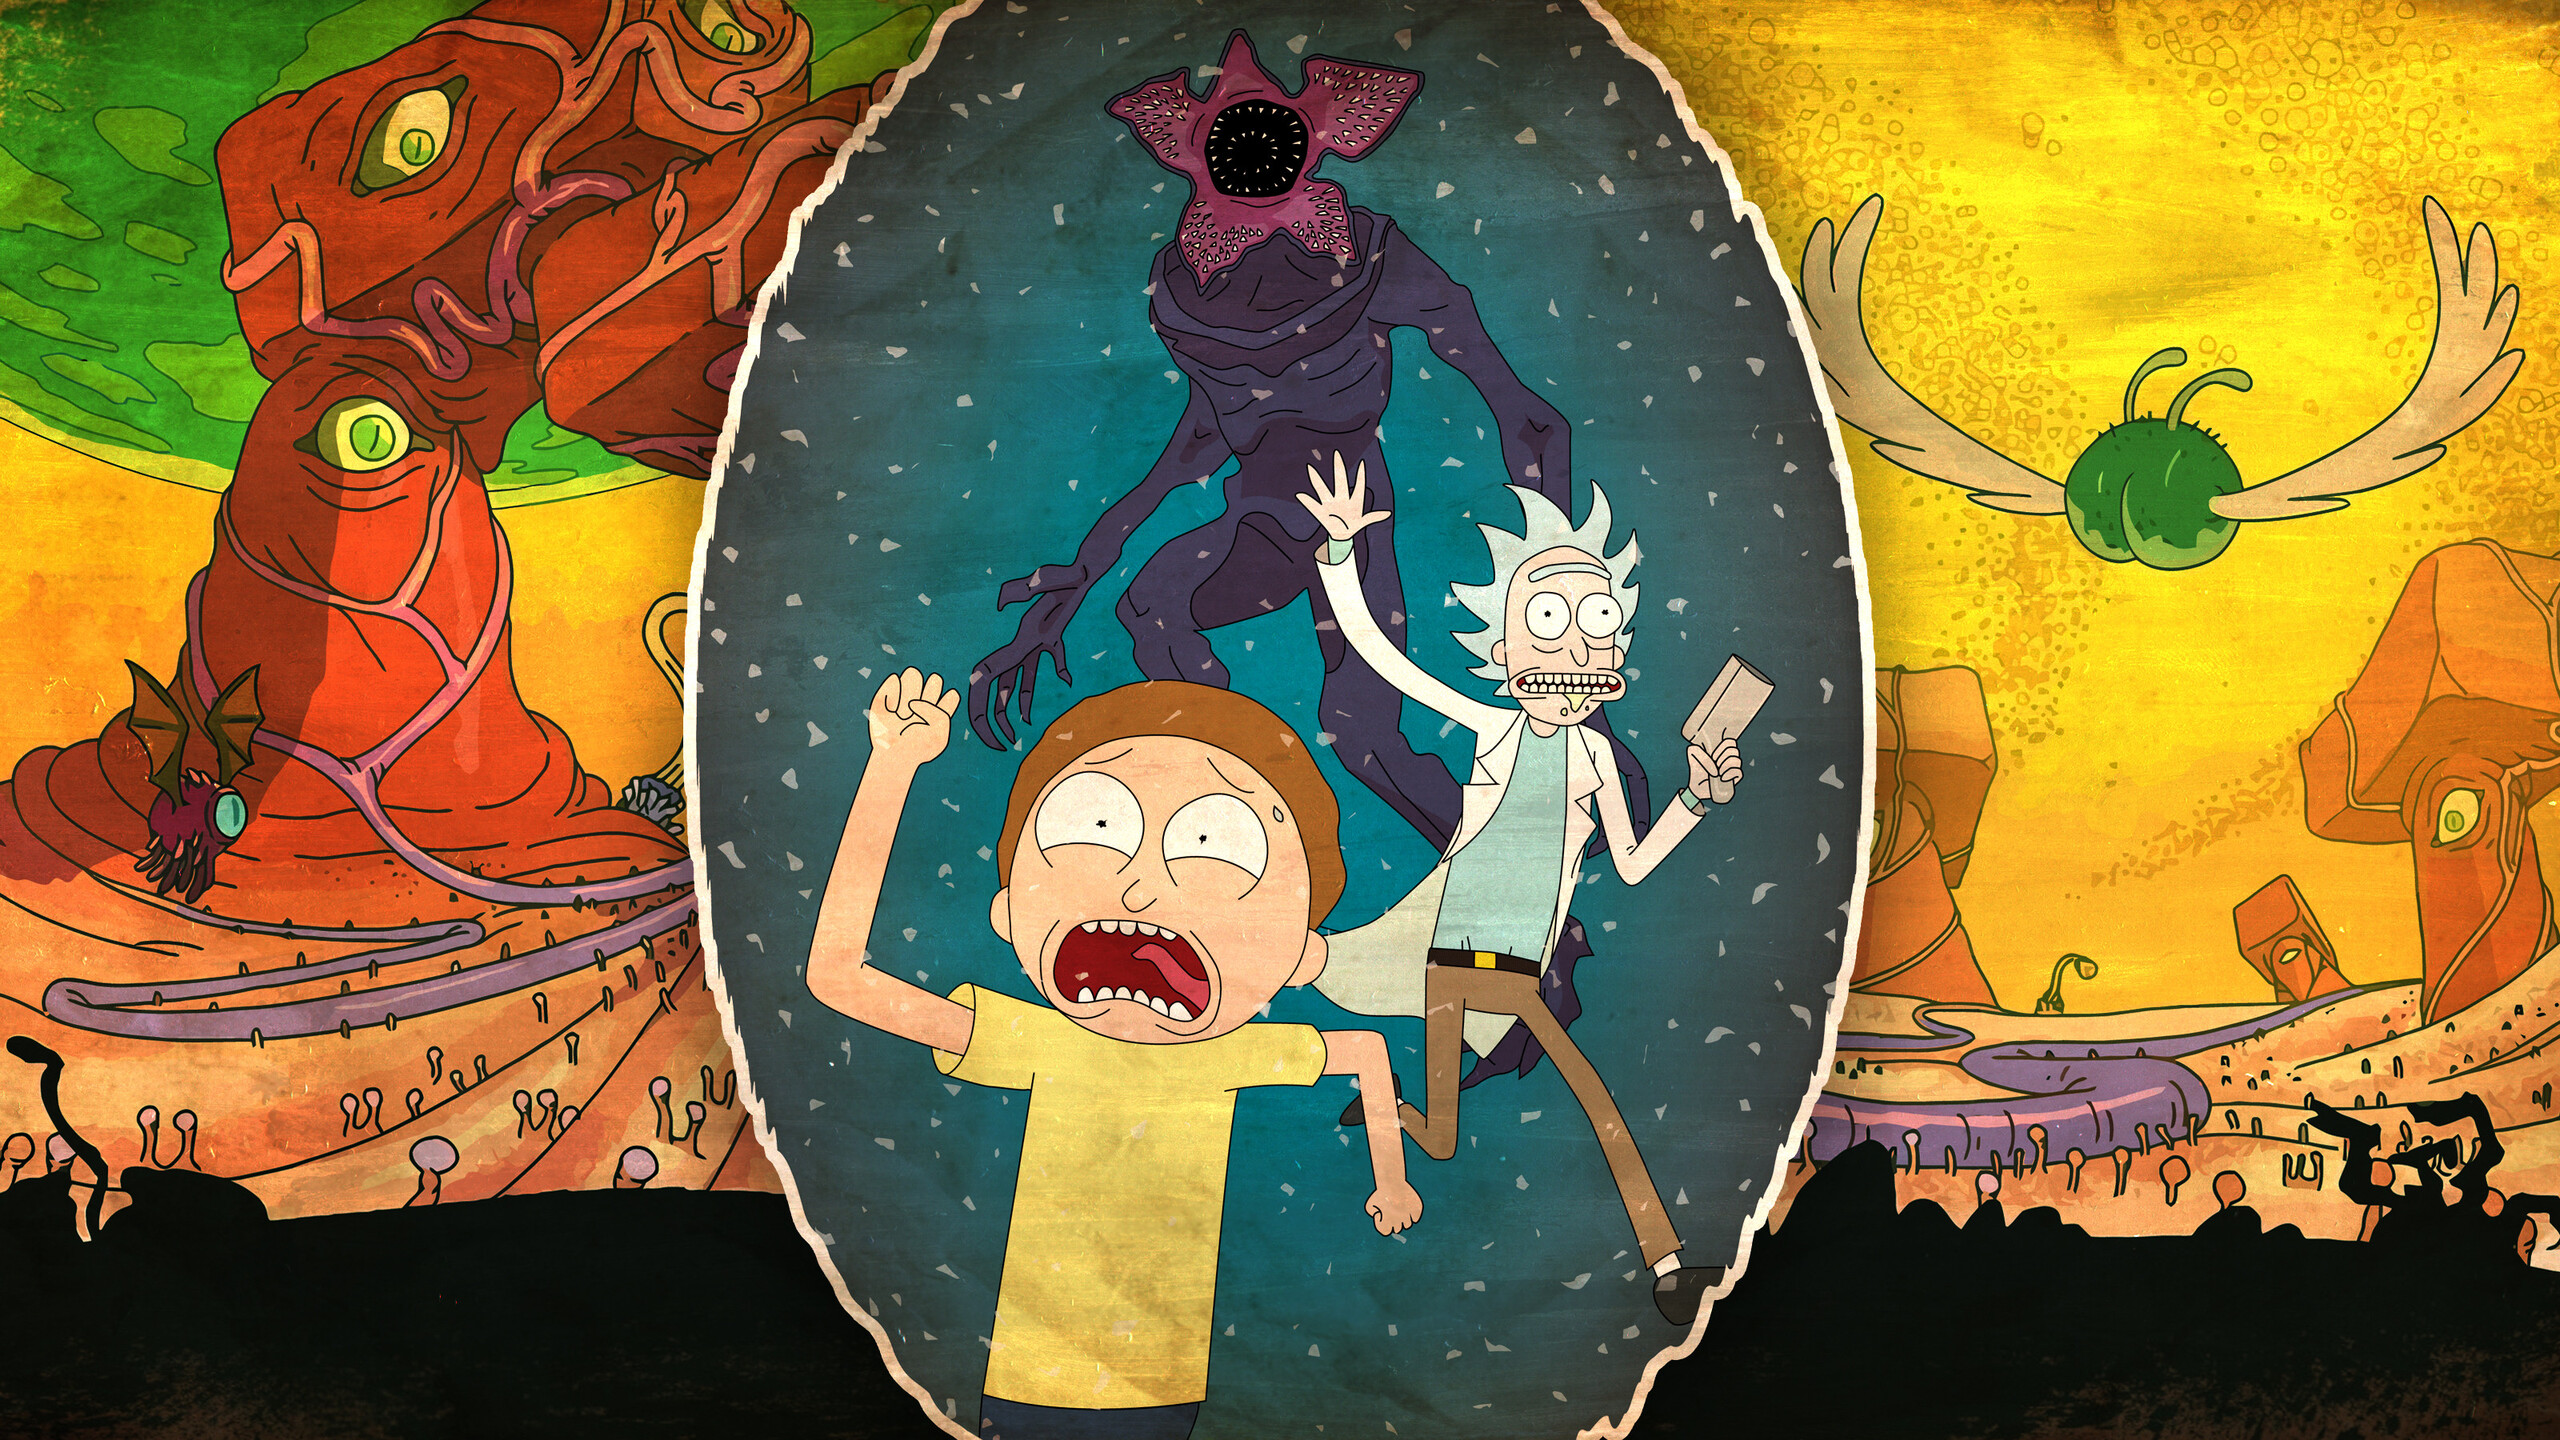 2560x1440 Rick And Morty 4k 1440p Resolution Hd 4k Wallpapers